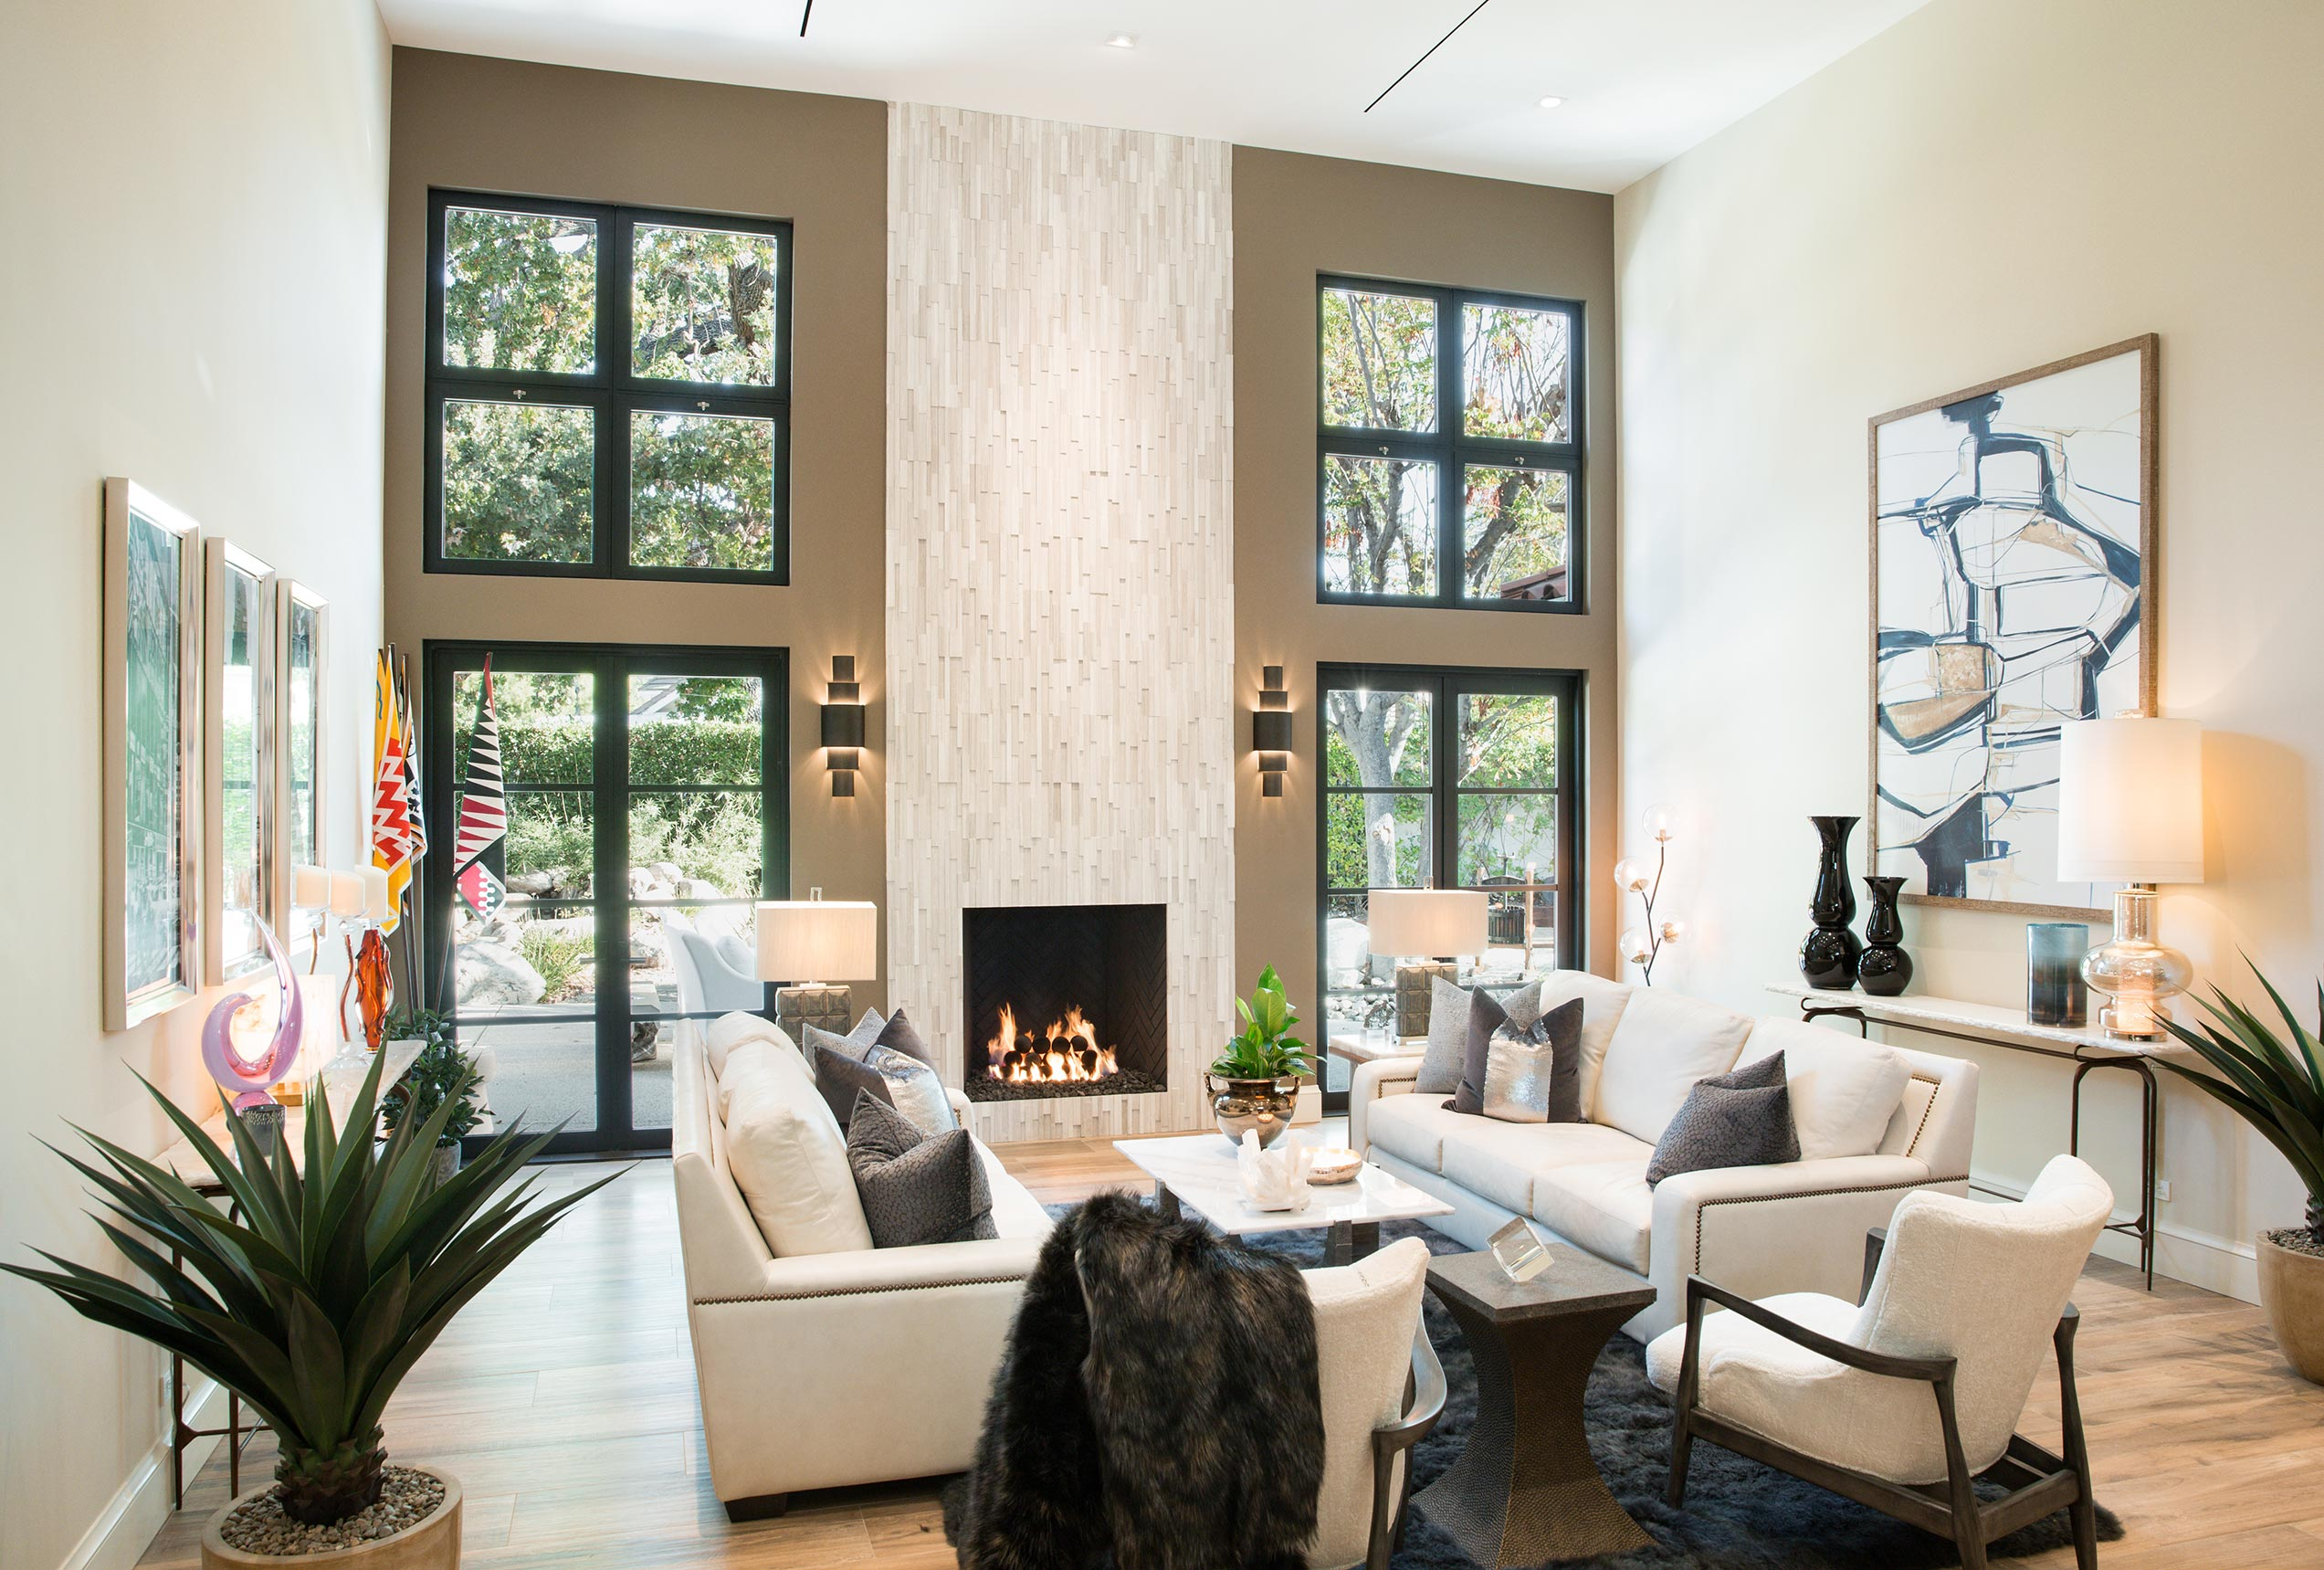 The fireplace is framed by Series 900 Hinged Doors and Series 670 hopper windows.